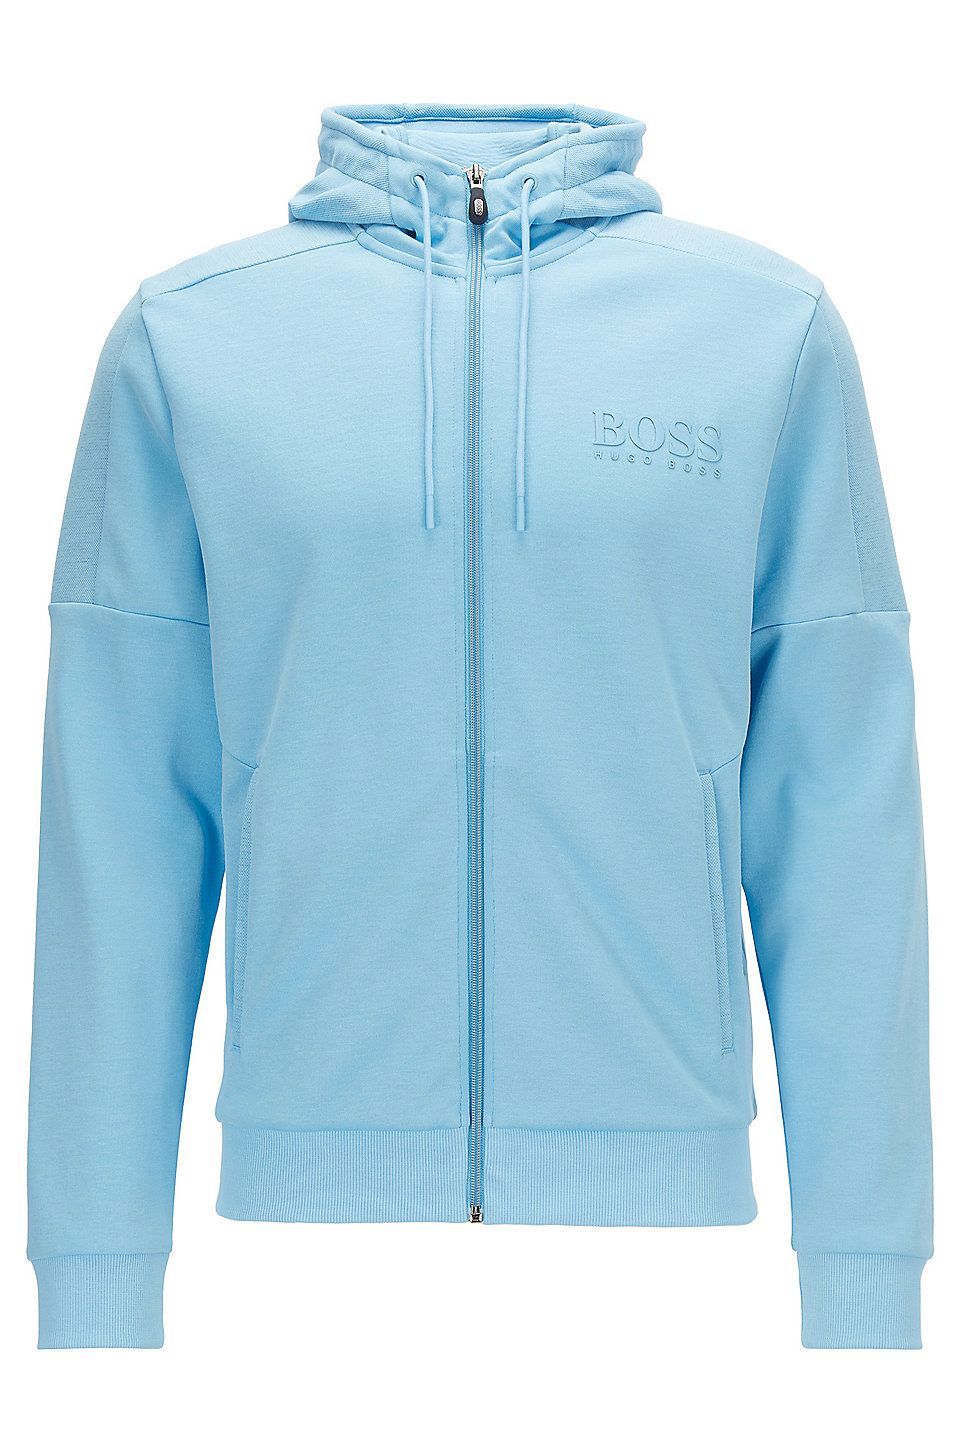 Hugo Boss Regular Fit Jacket In A Cotton Blend Light Blue Sweaters And Cardigans From Boss For Men In The Offi Workout Jacket Jackets Hooded Sweatshirt Men [ 1456 x 960 Pixel ]